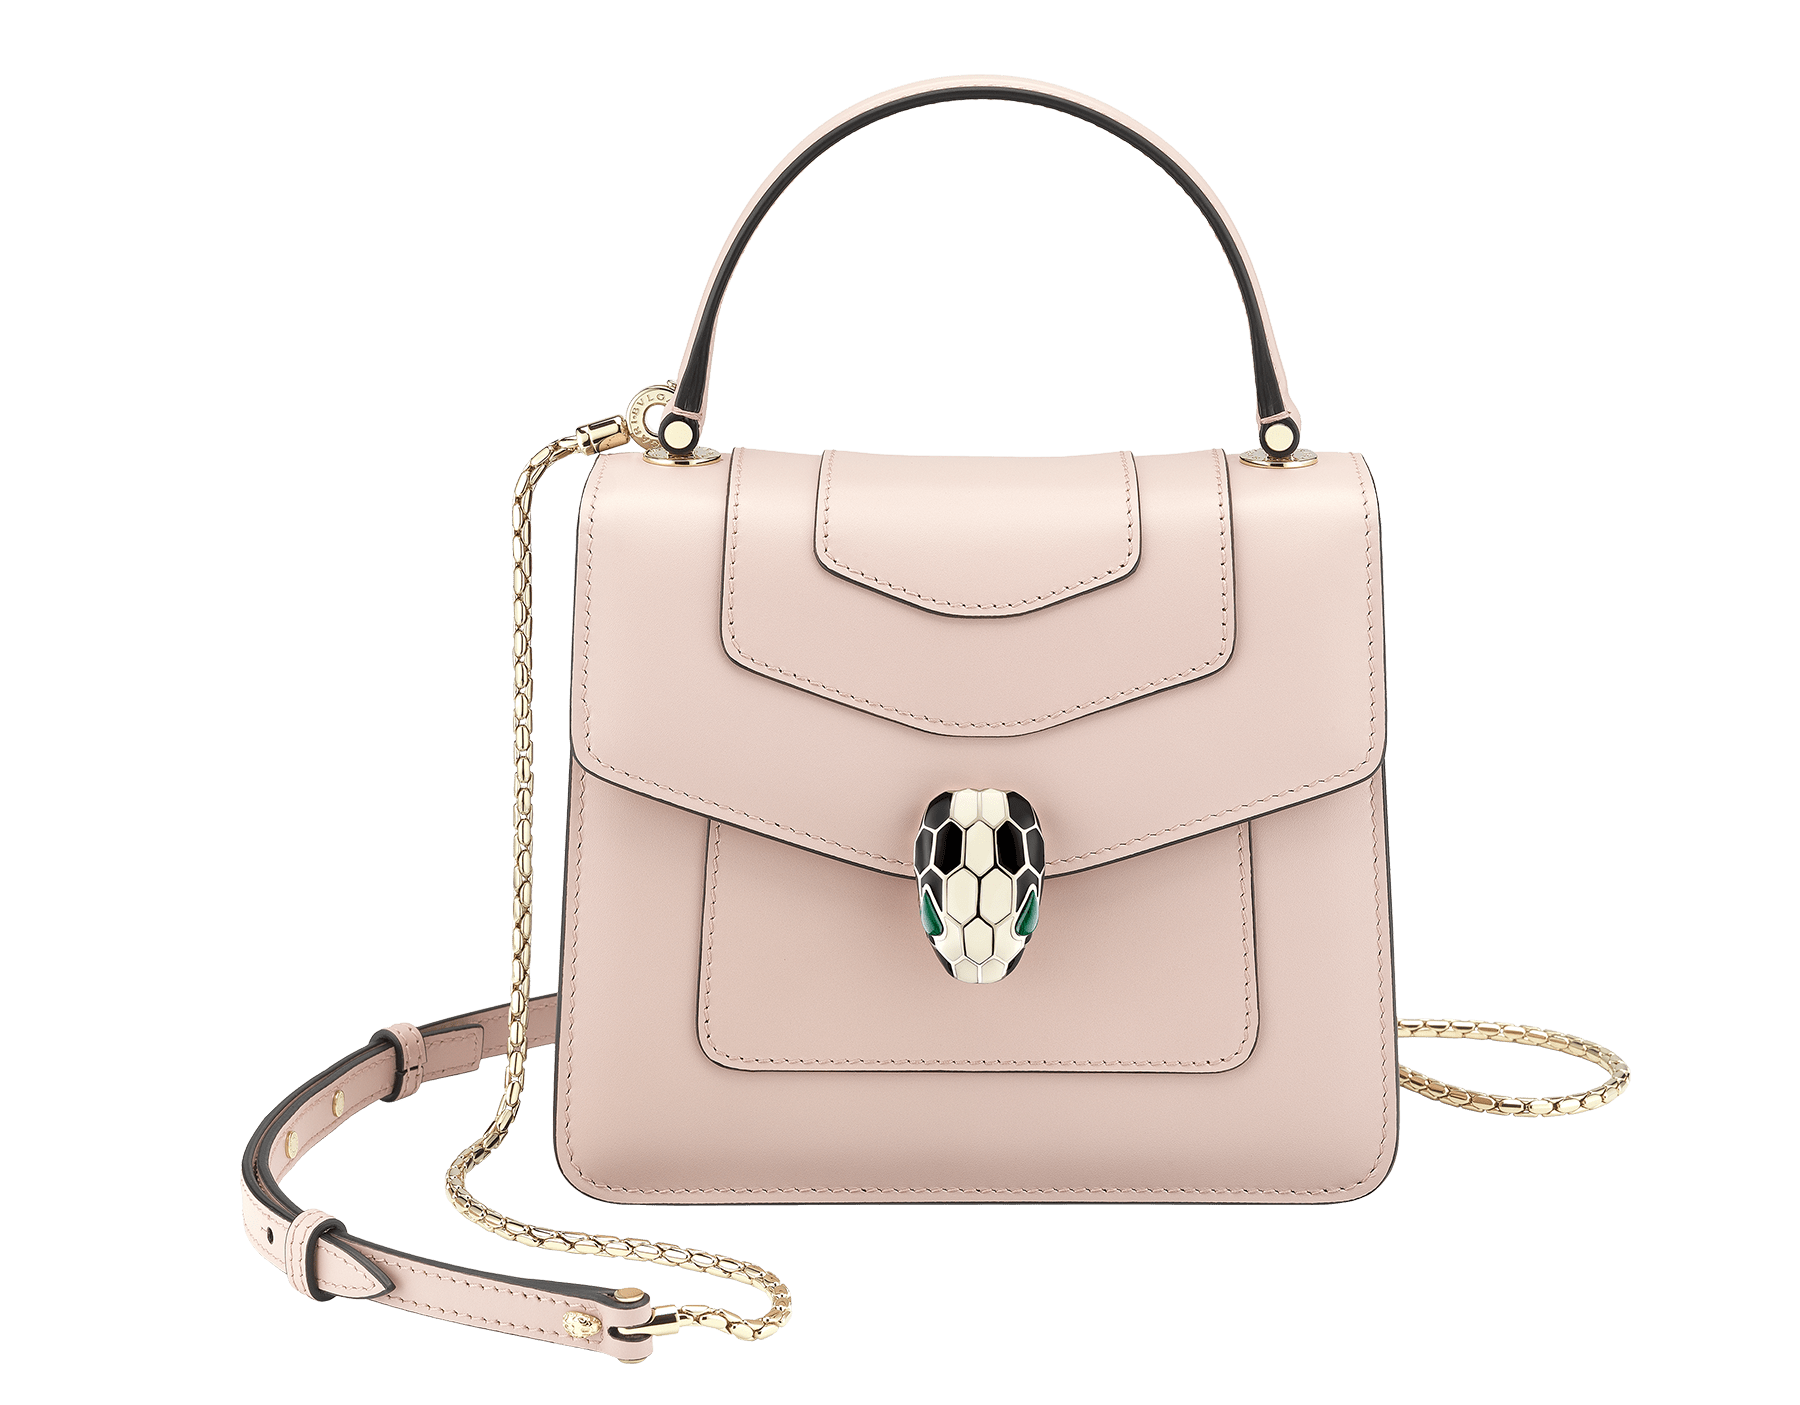 """Serpenti Forever"" crossbody bag in crystal rose calf leather. Iconic snakehead closure in light gold plated brass enriched with black and white enamel and green malachite eyes 287030 image 1"